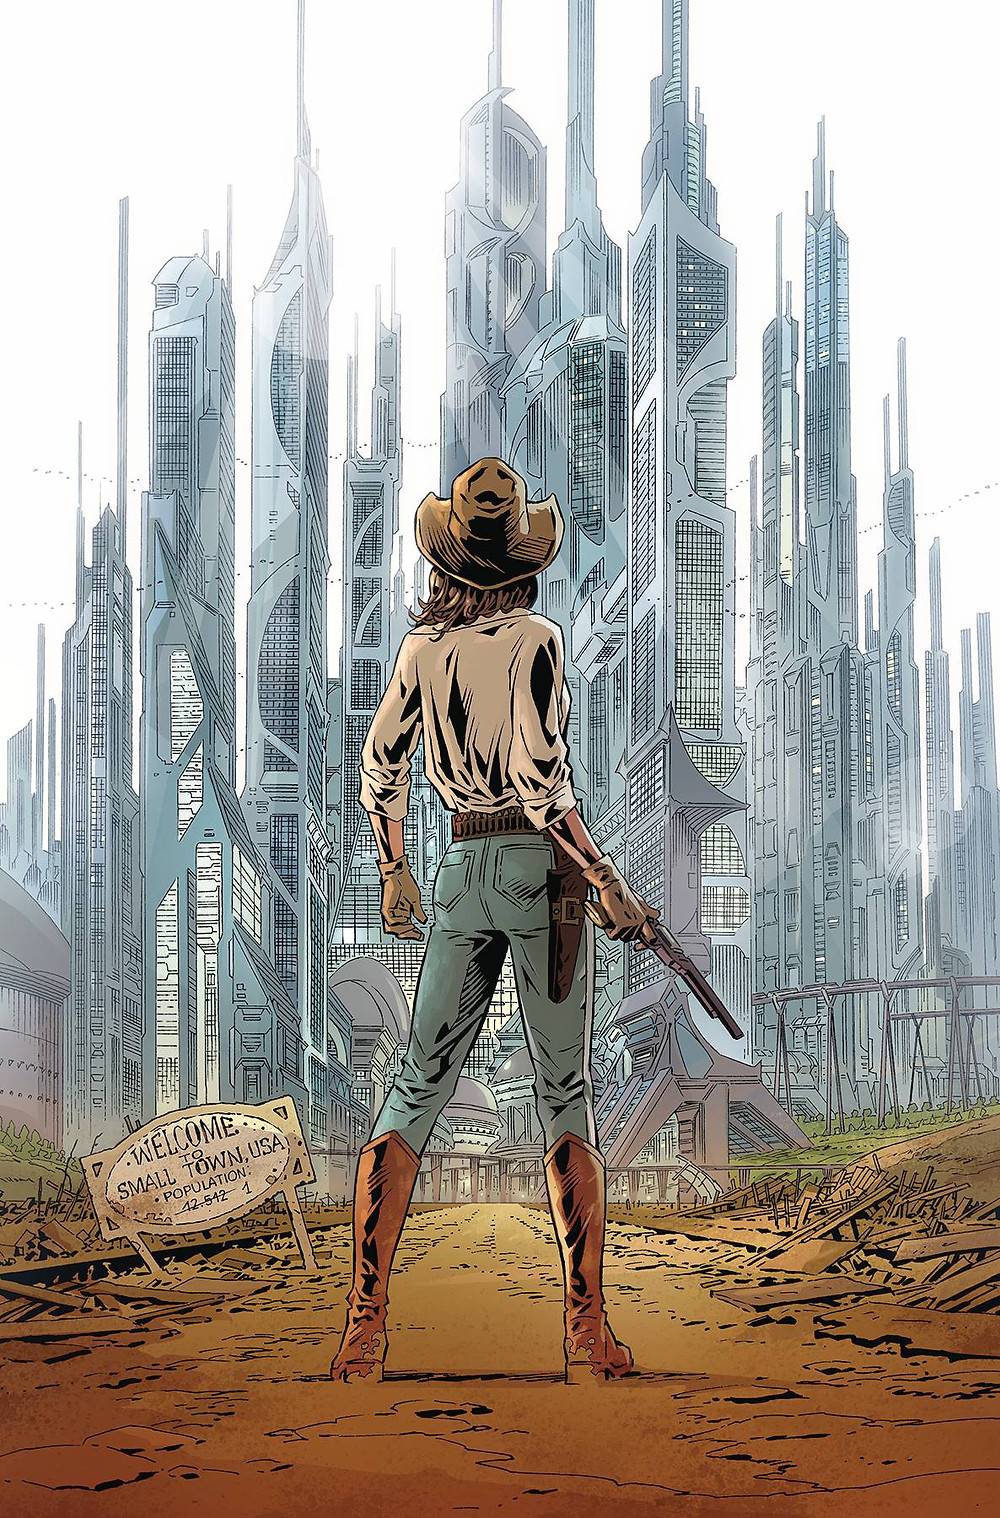 Join the Future #1 Cover